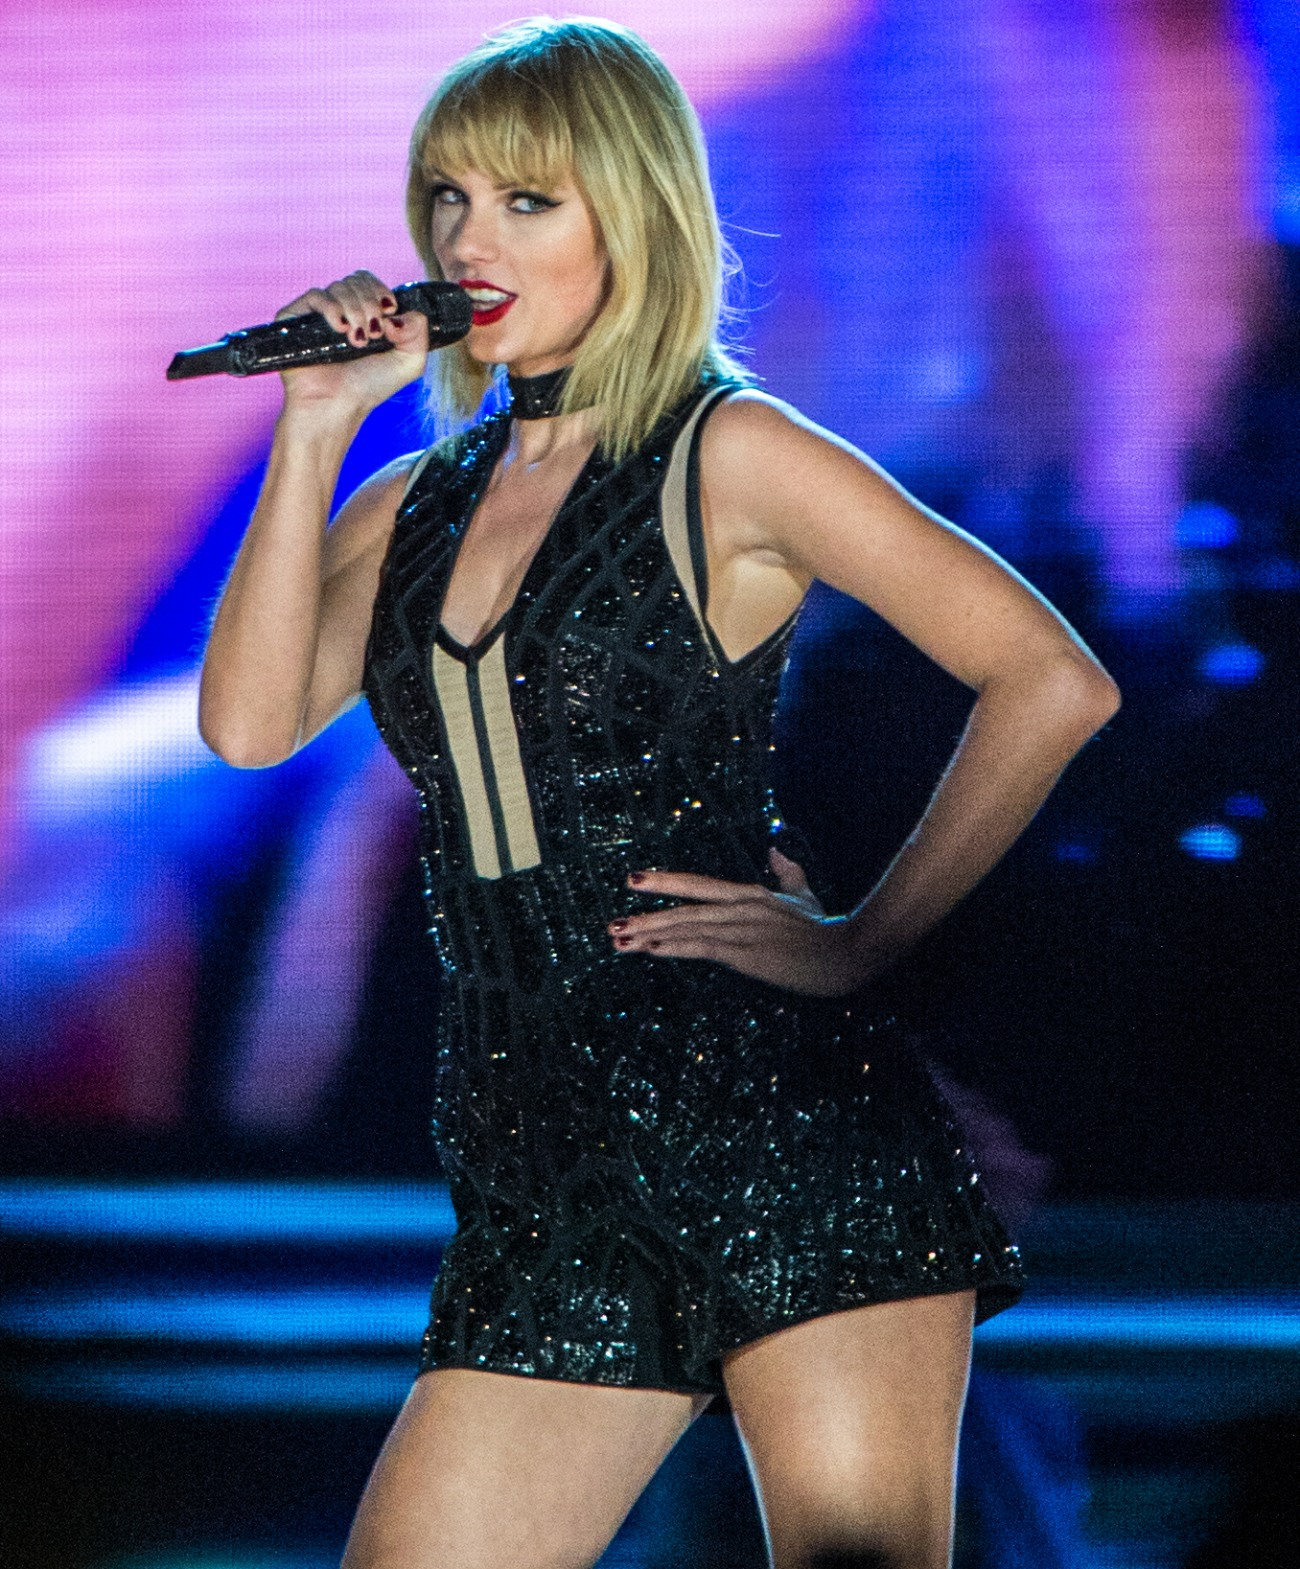 Taylor Swift performing live on stage